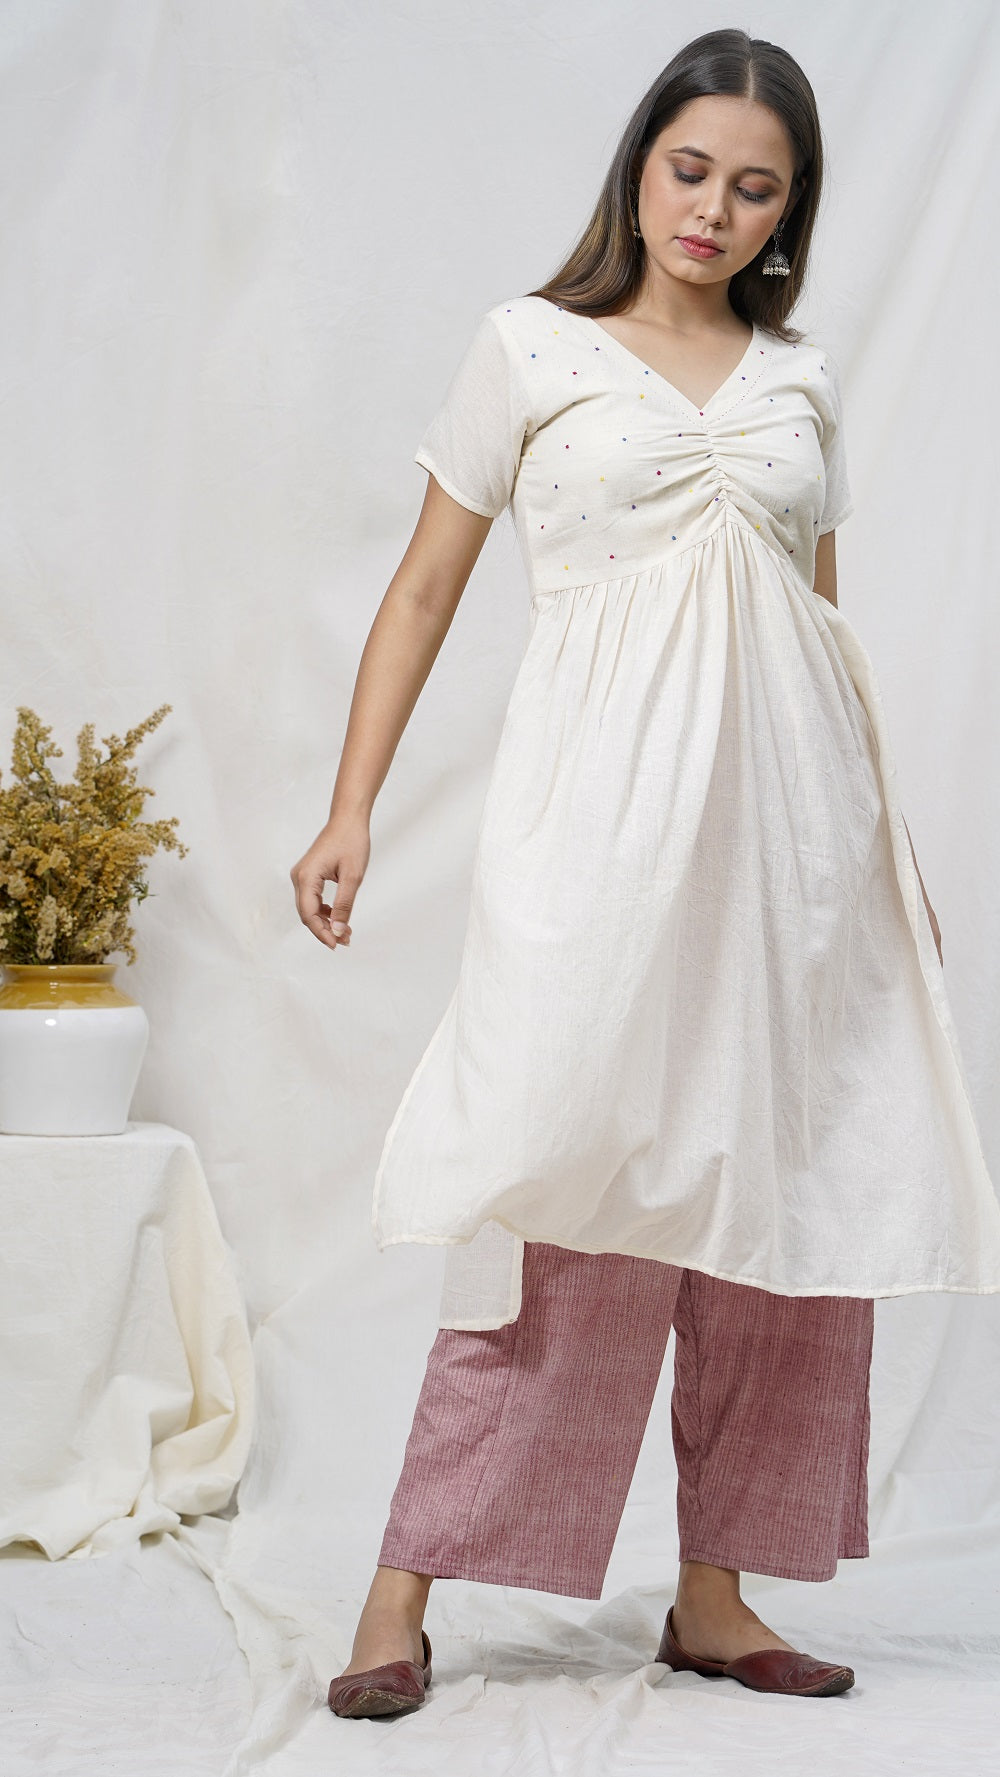 Guler cotton tunic set online available at bebaakstudio.com